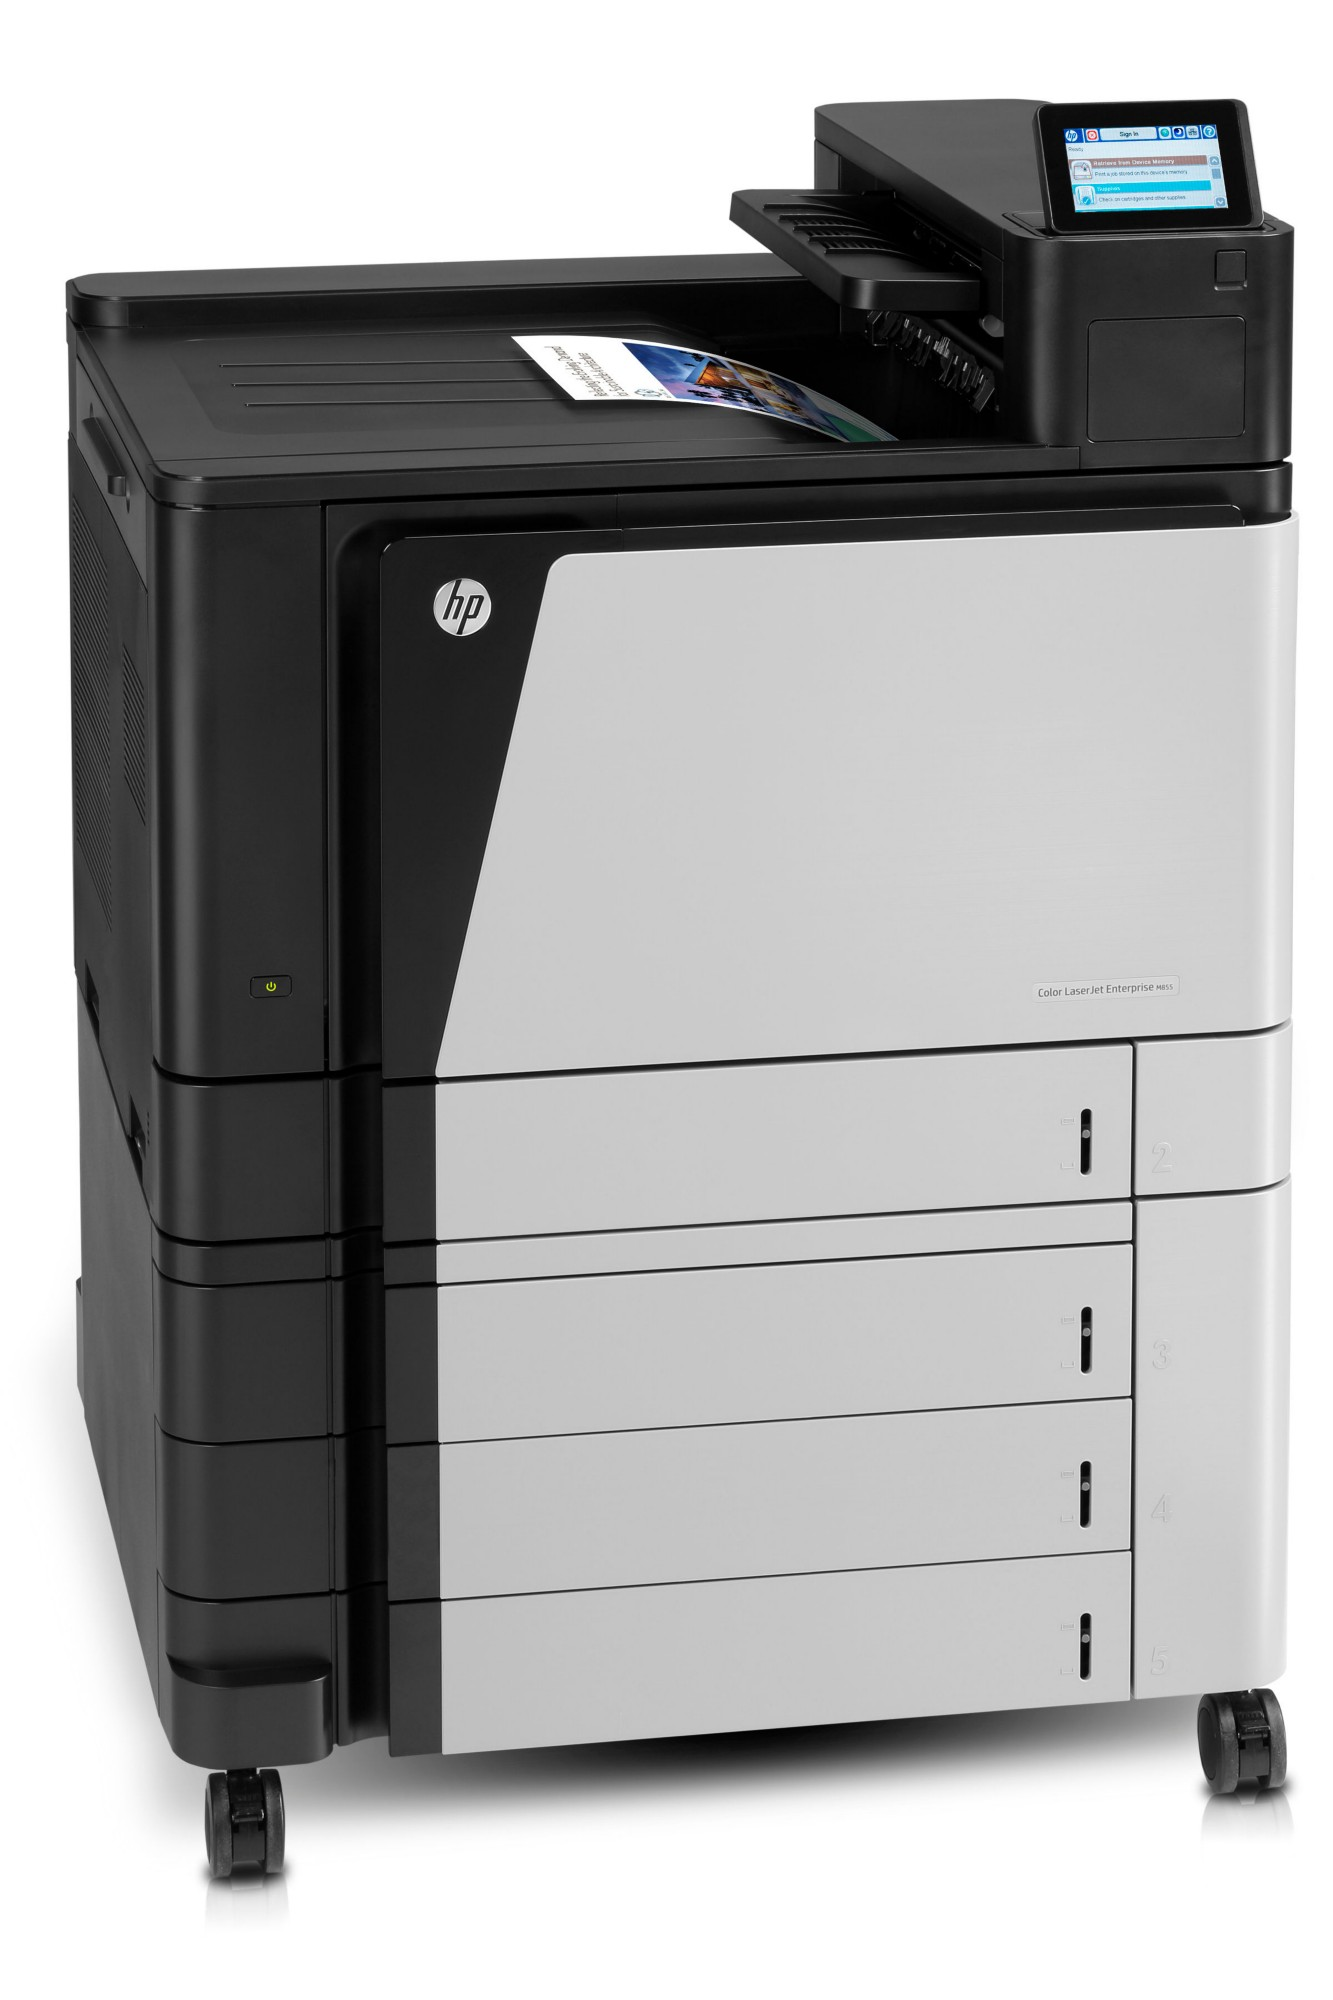 HP LaserJet Color Enterprise M855xh Printer A2W78A#B19